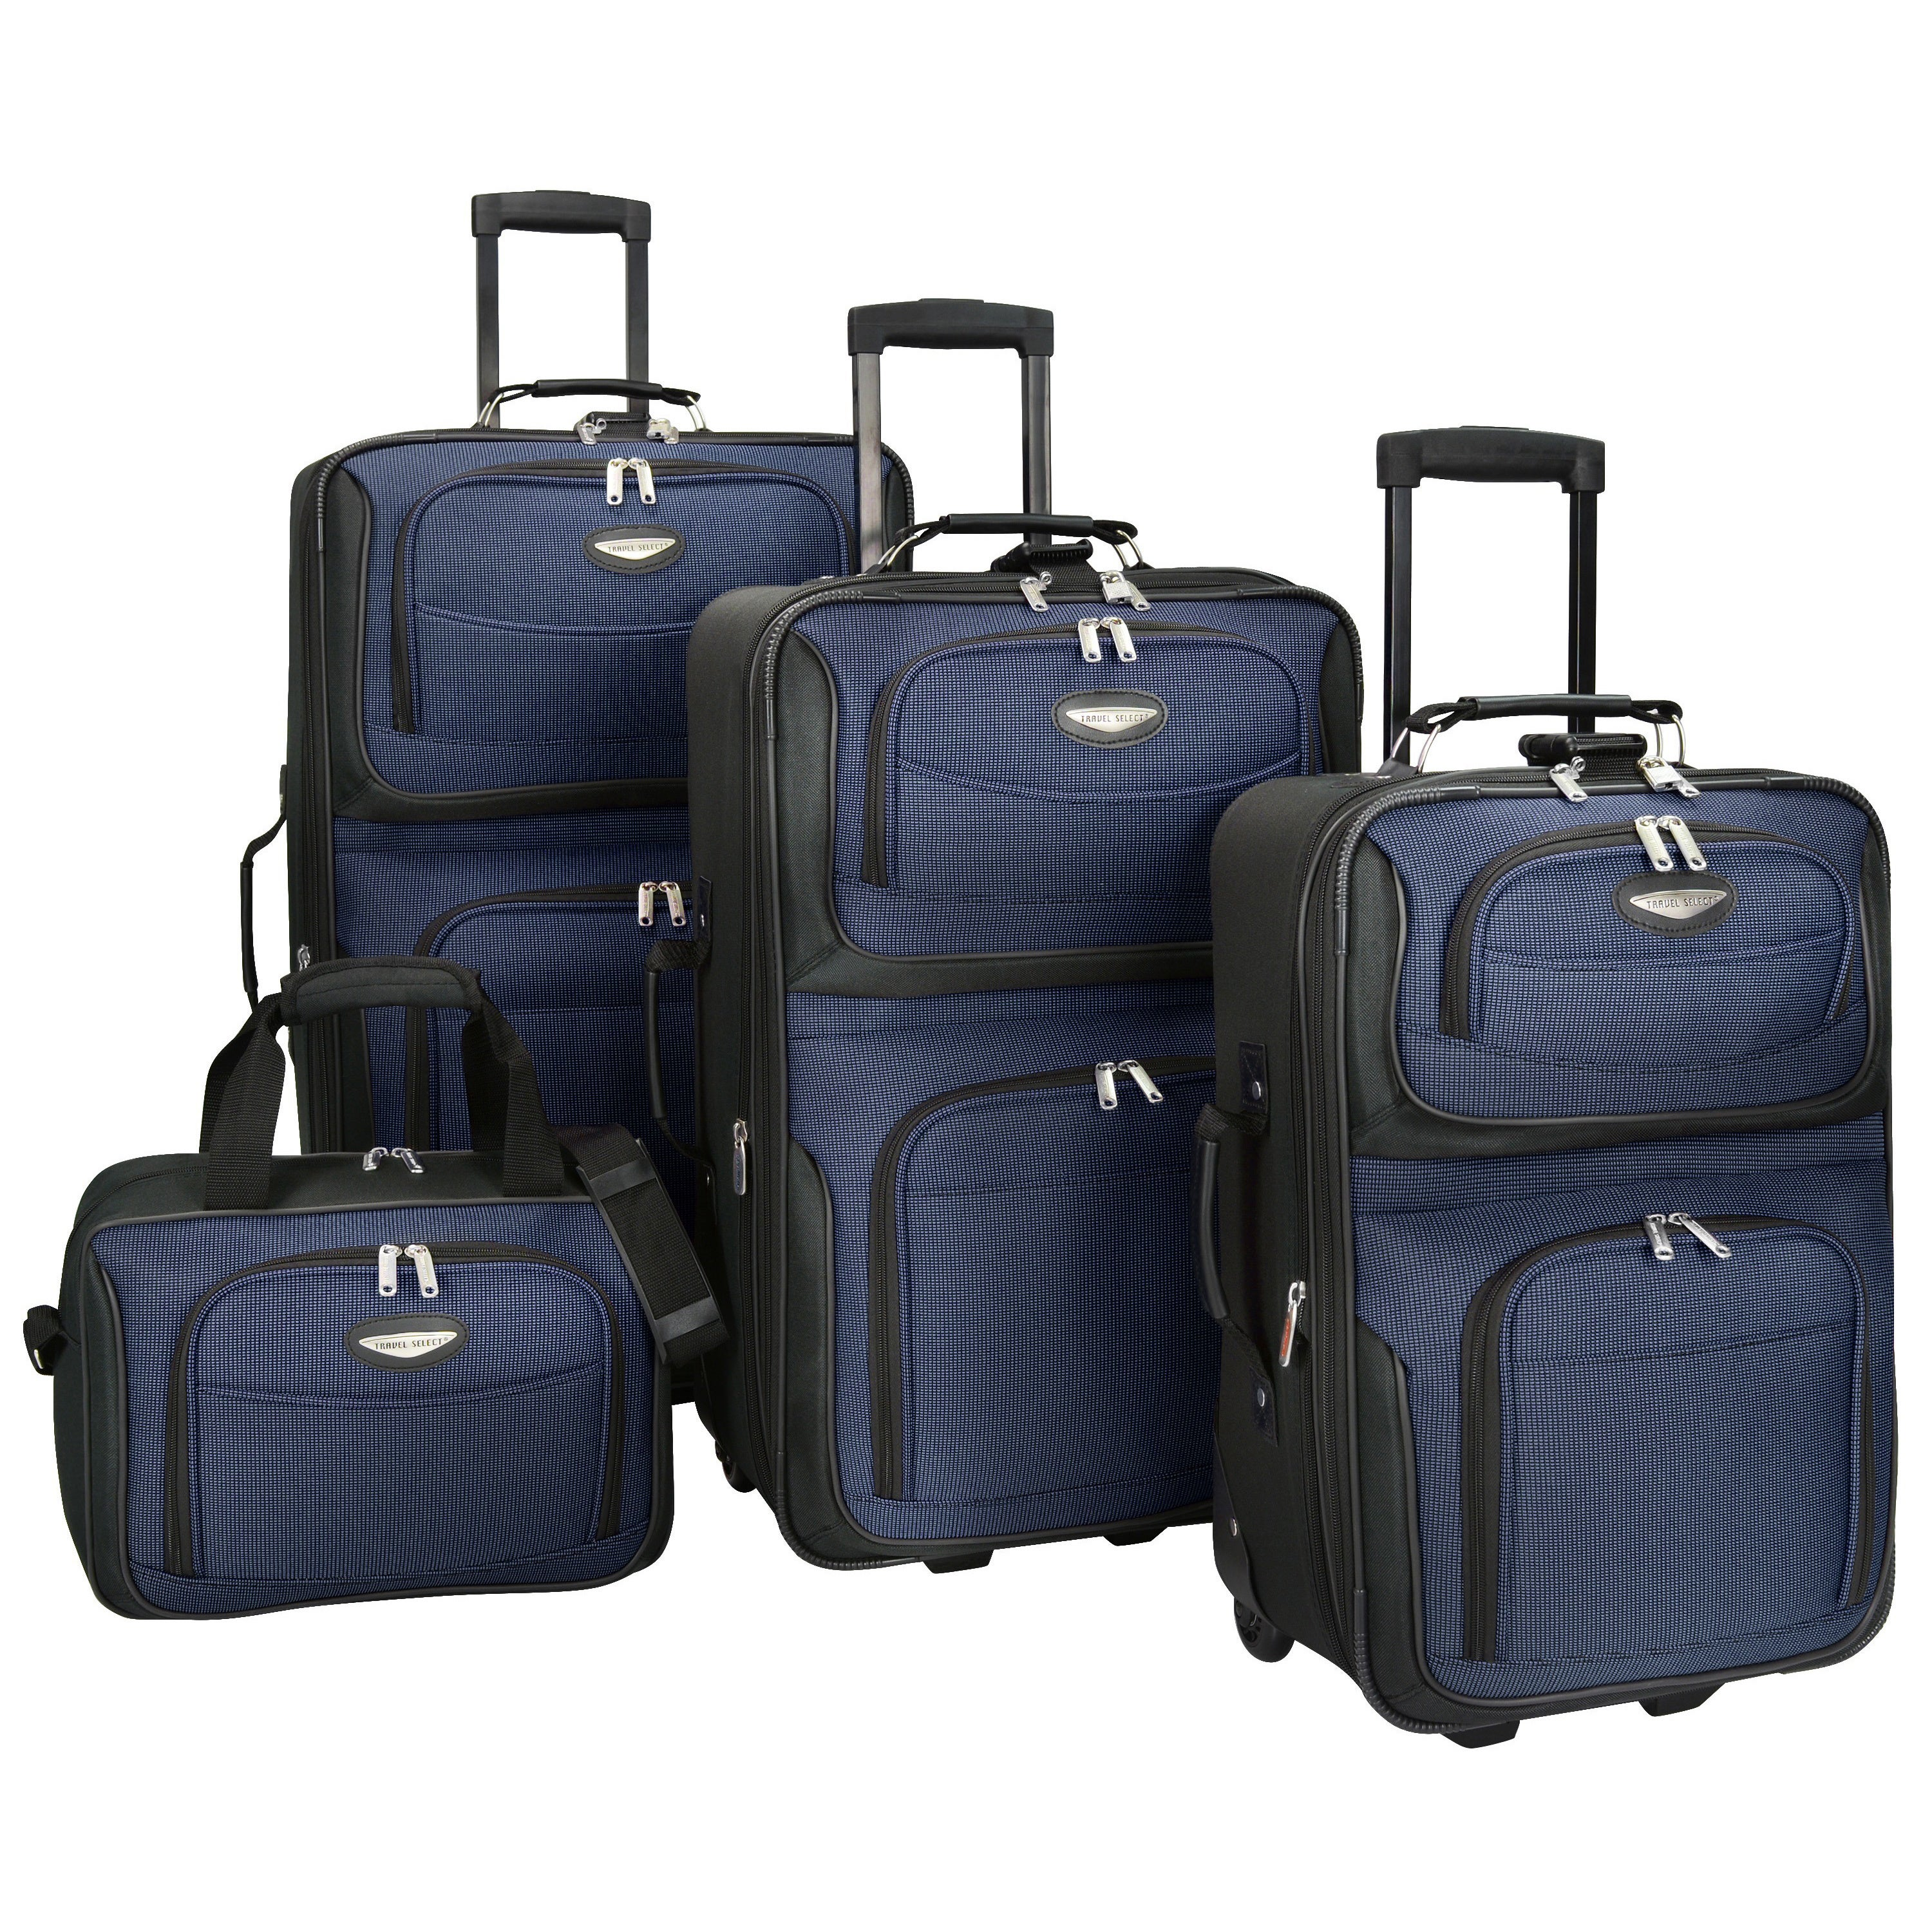 Travel Select By Traveler S Choice Amsterdam 4 Piece Luggage Set Free Shipping Today 711428